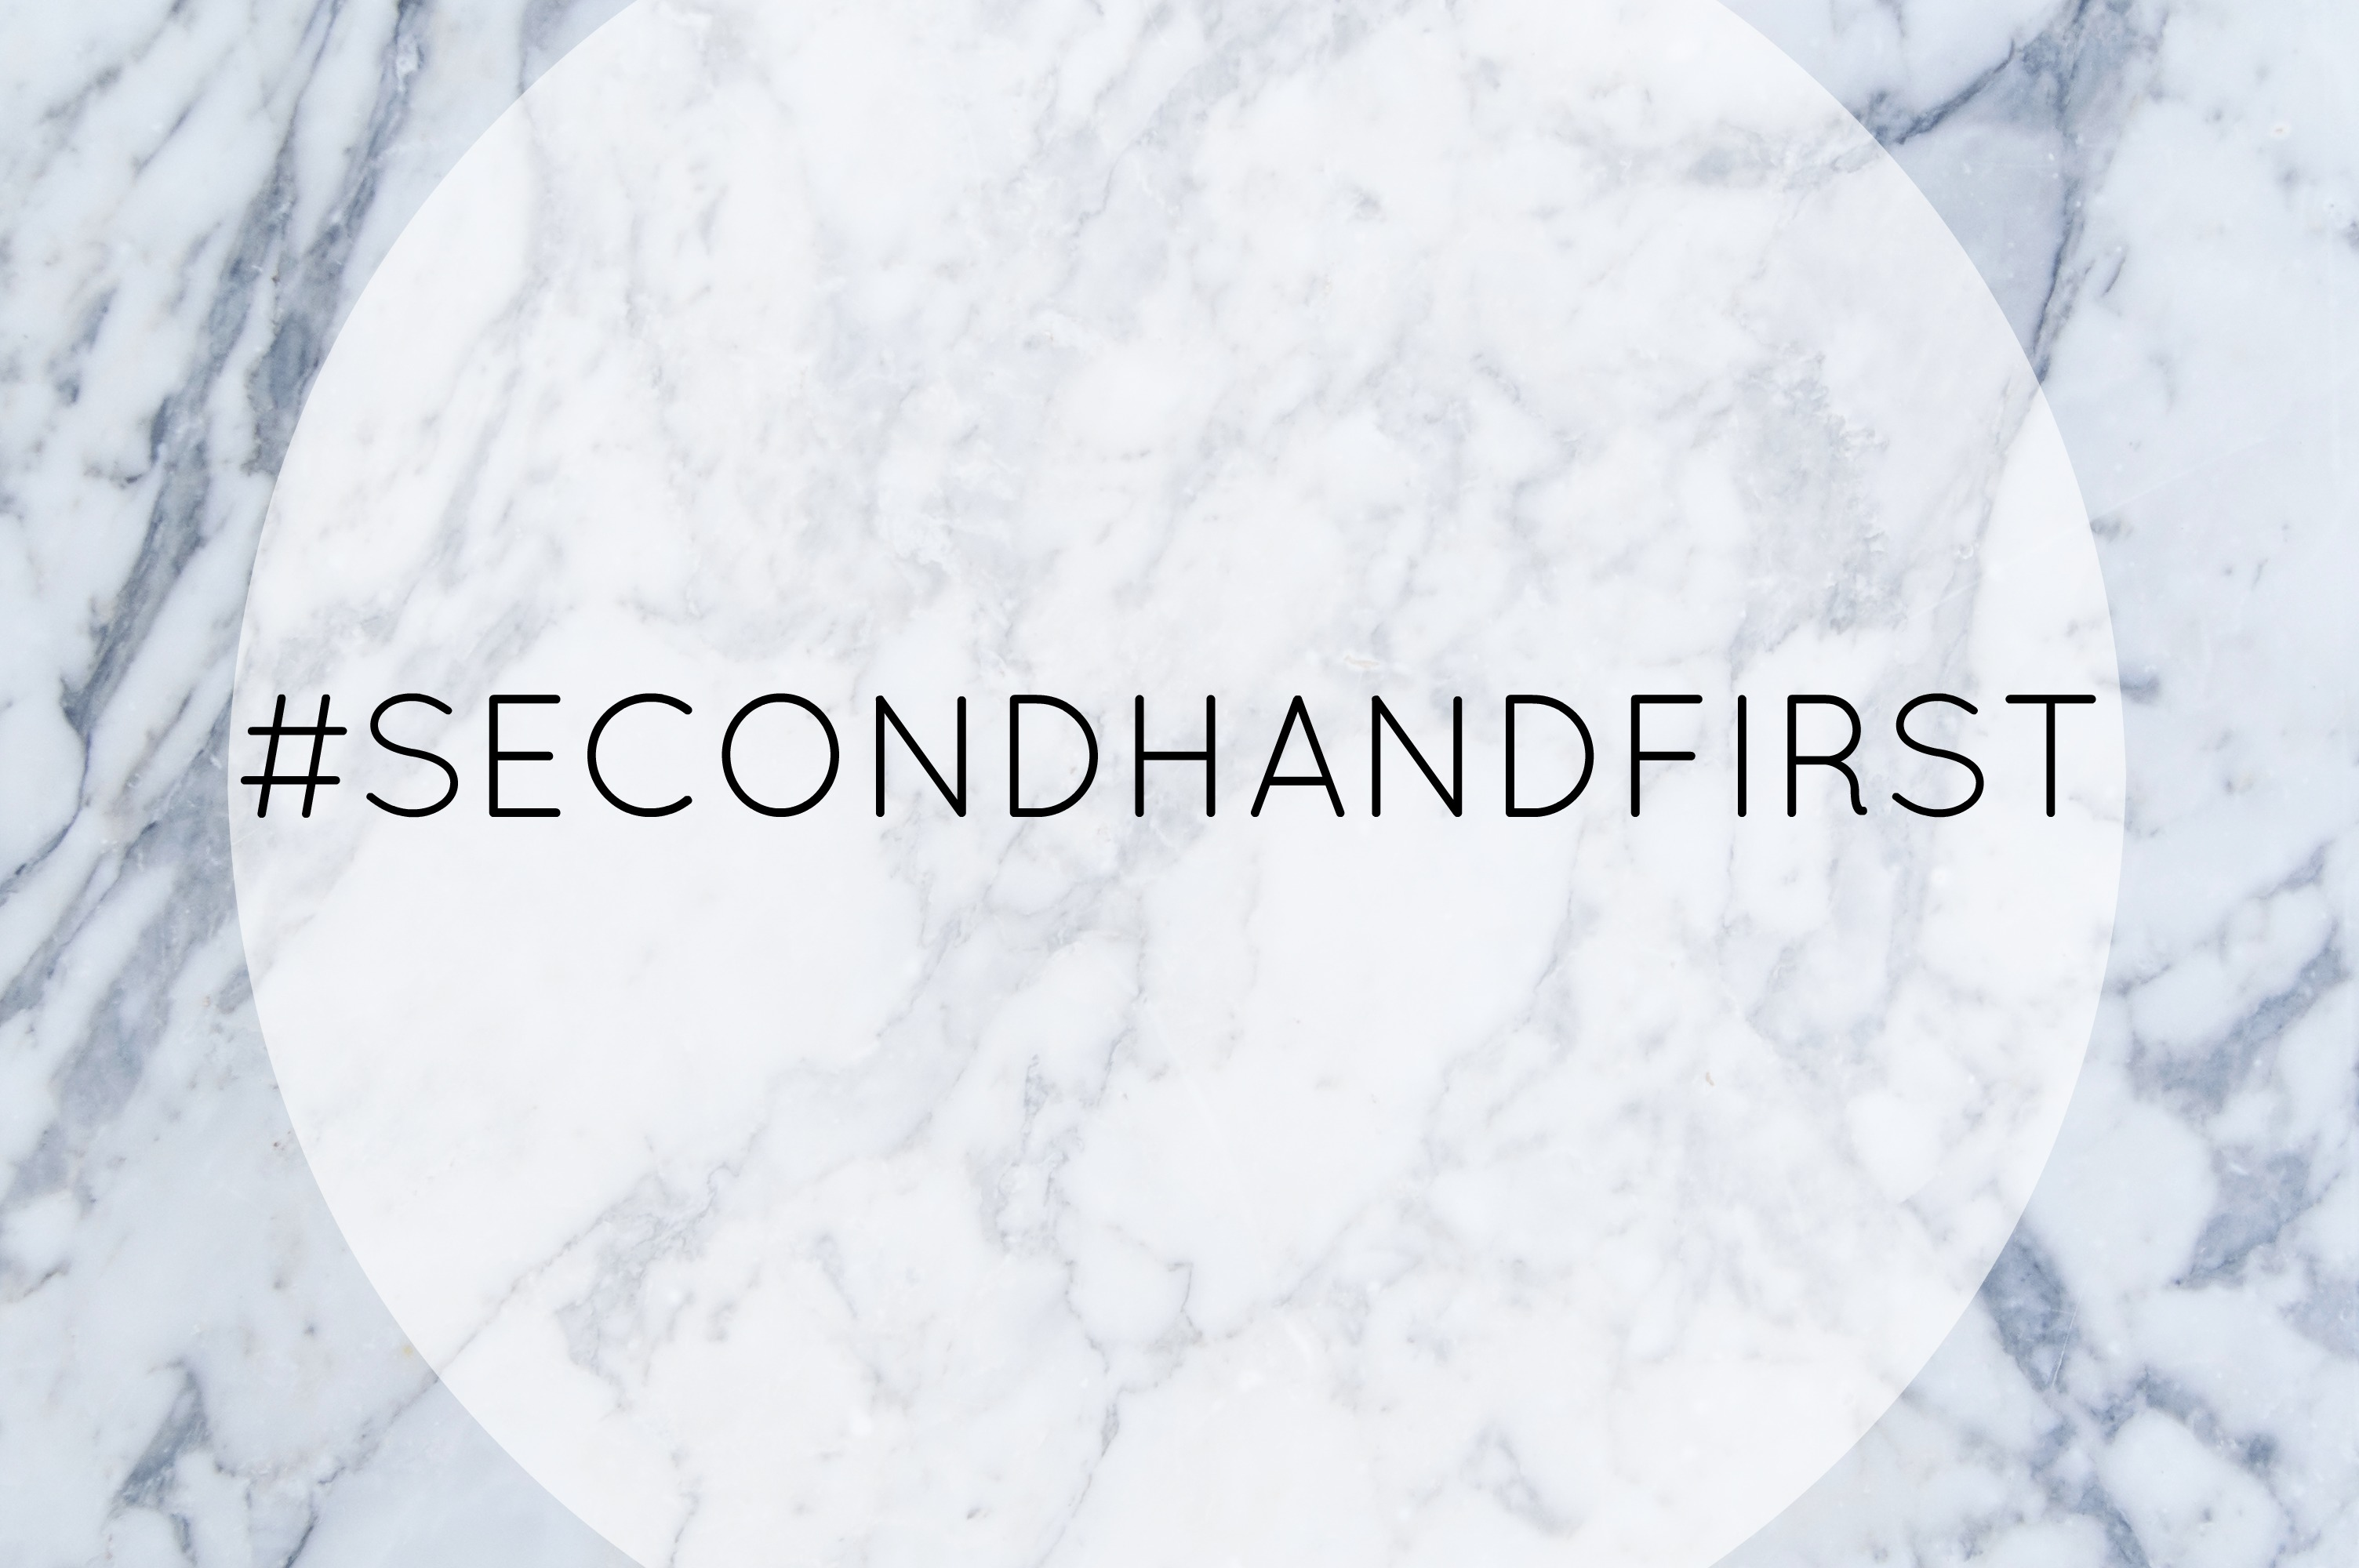 TRAID Second Hand First Week ethical fashion campaign get involved